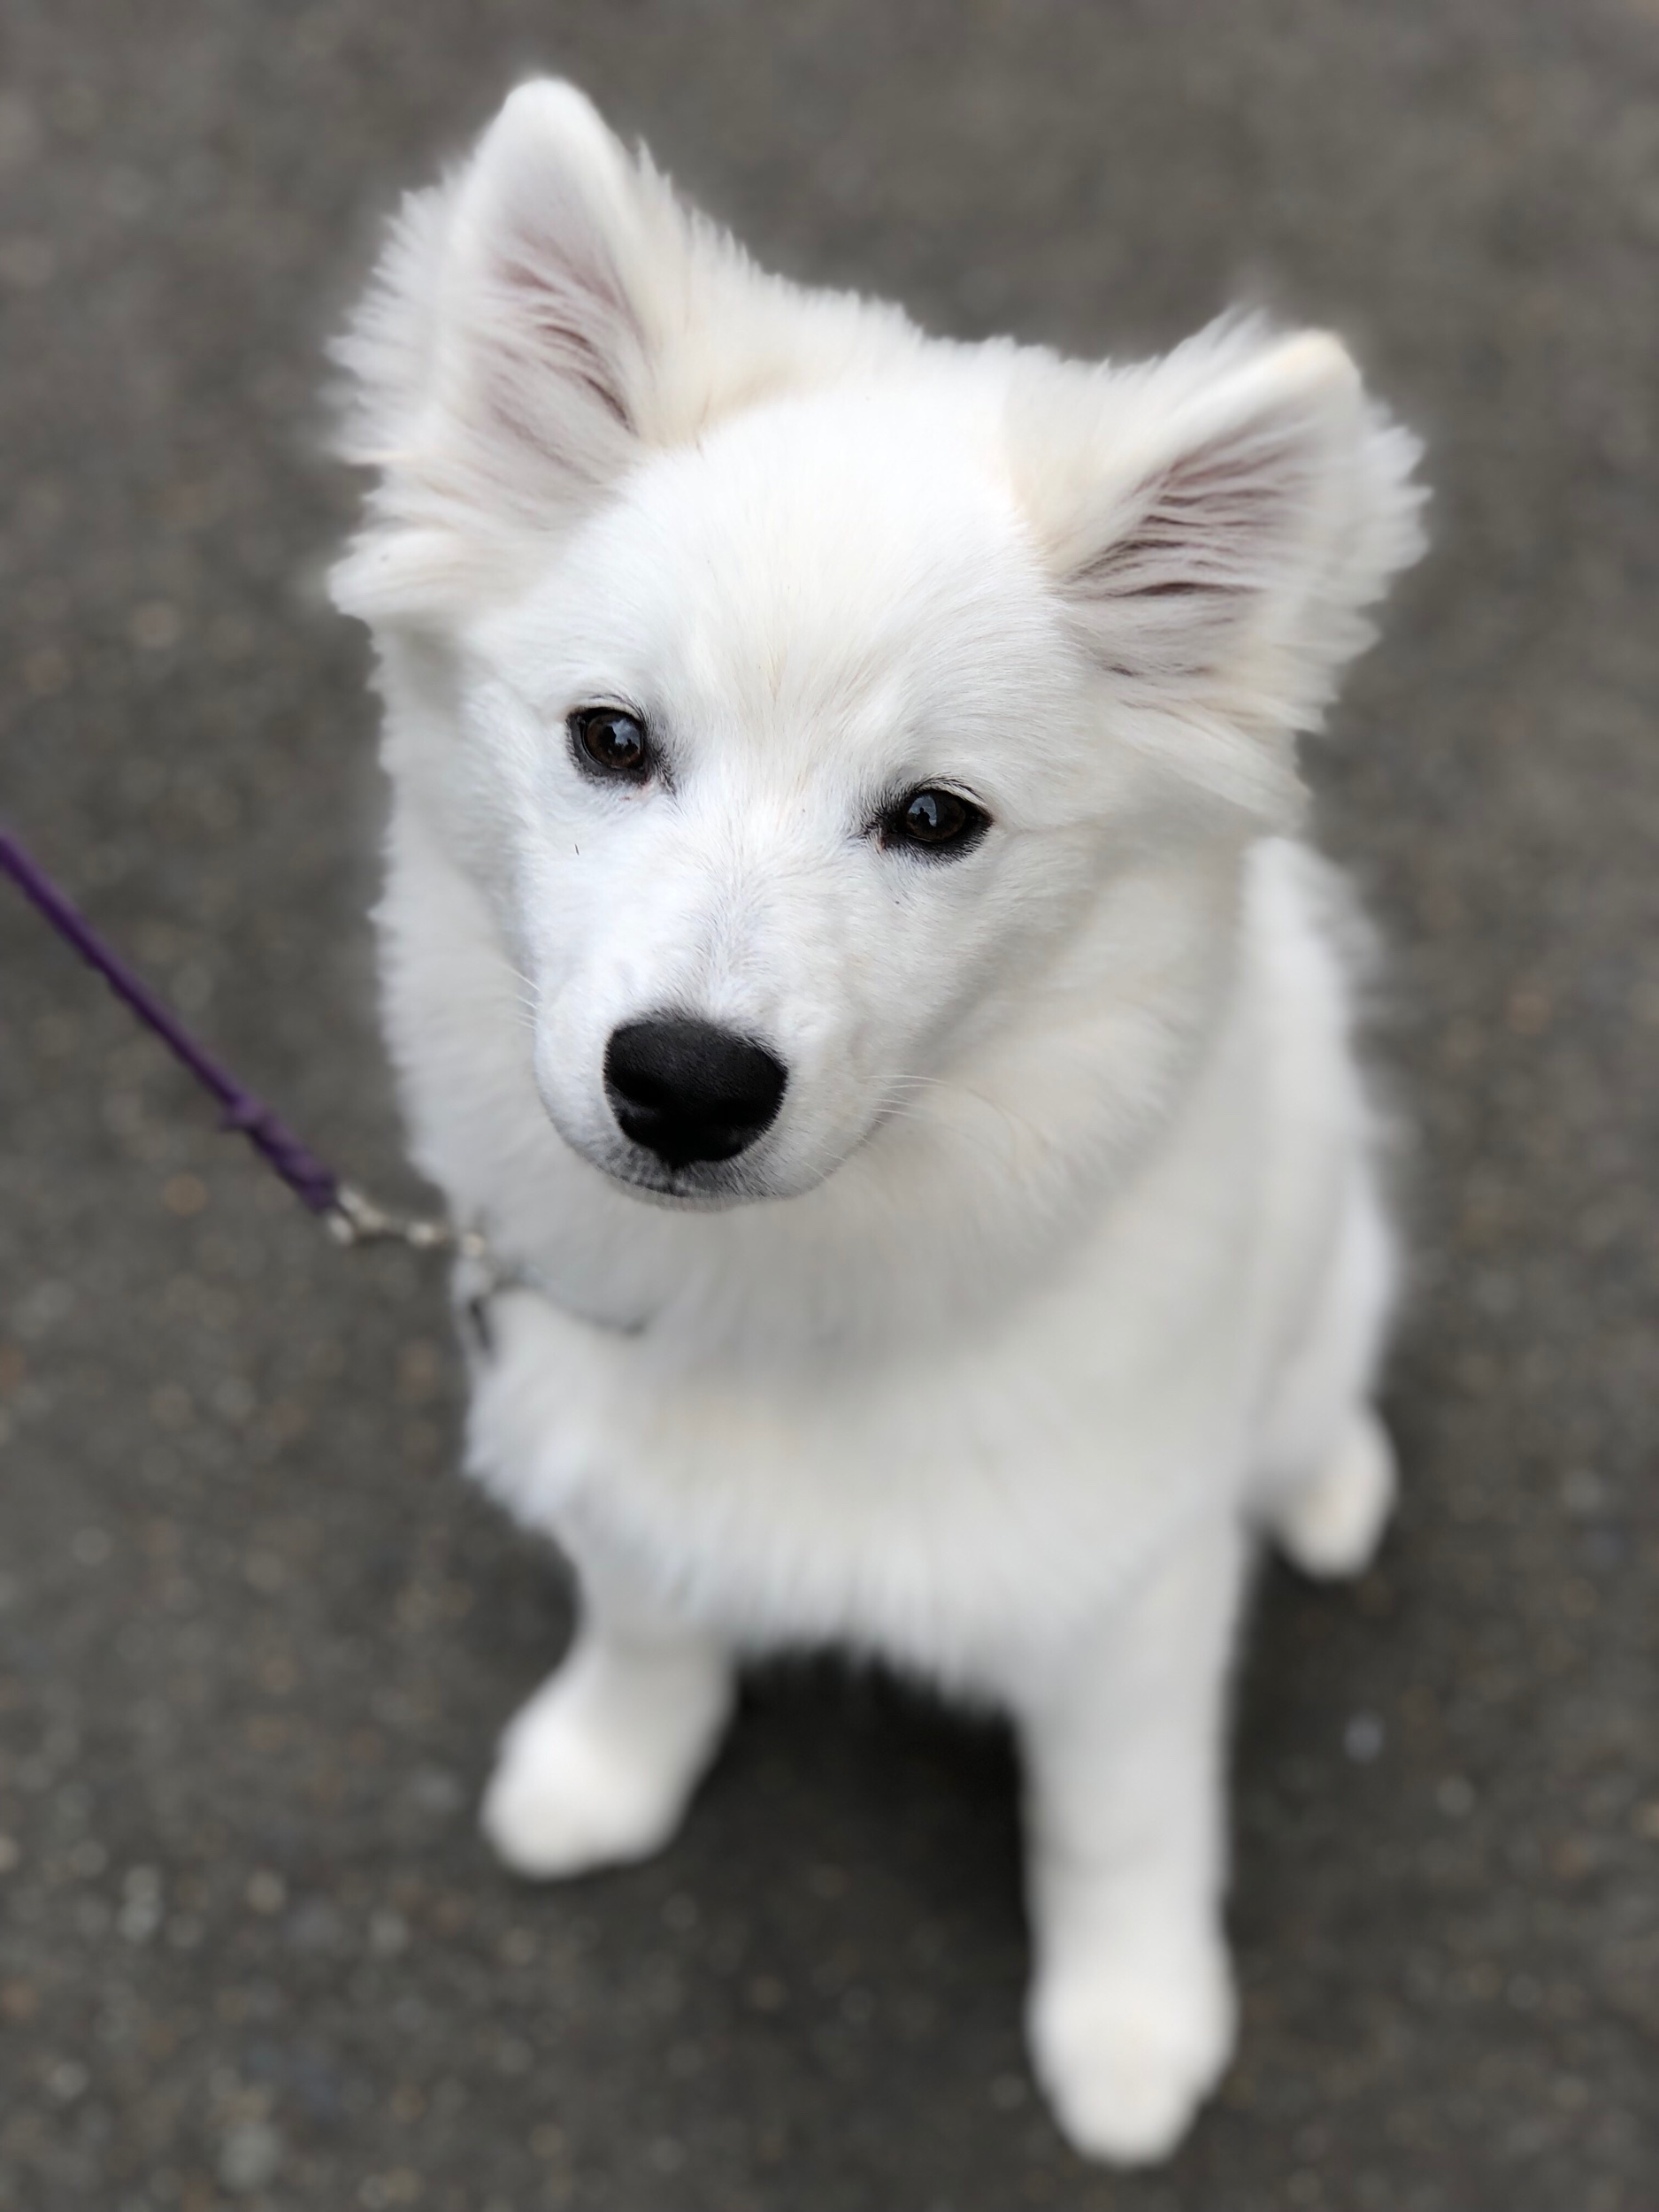 STAR Puppy, CGC Canine Good Citizen Prep and Test, Therapy Dog evaluations in Redmond, Bellevue, Sammamish, Kirkland, Medina and Issaquah, WA